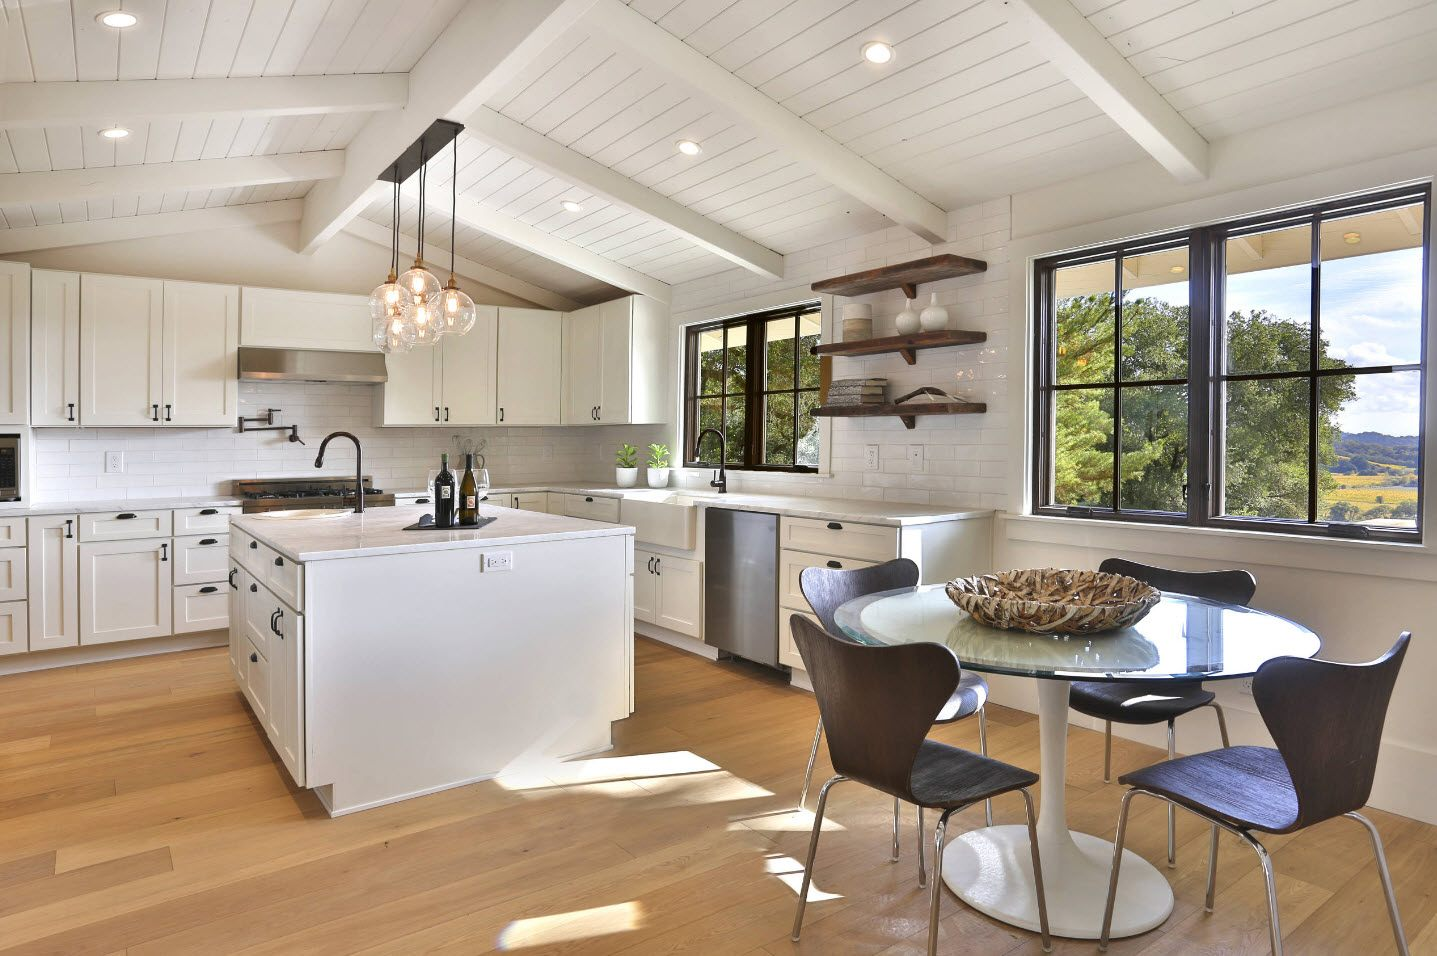 Modern loft cottage concept of the kitchen with large island and plenty of natural light